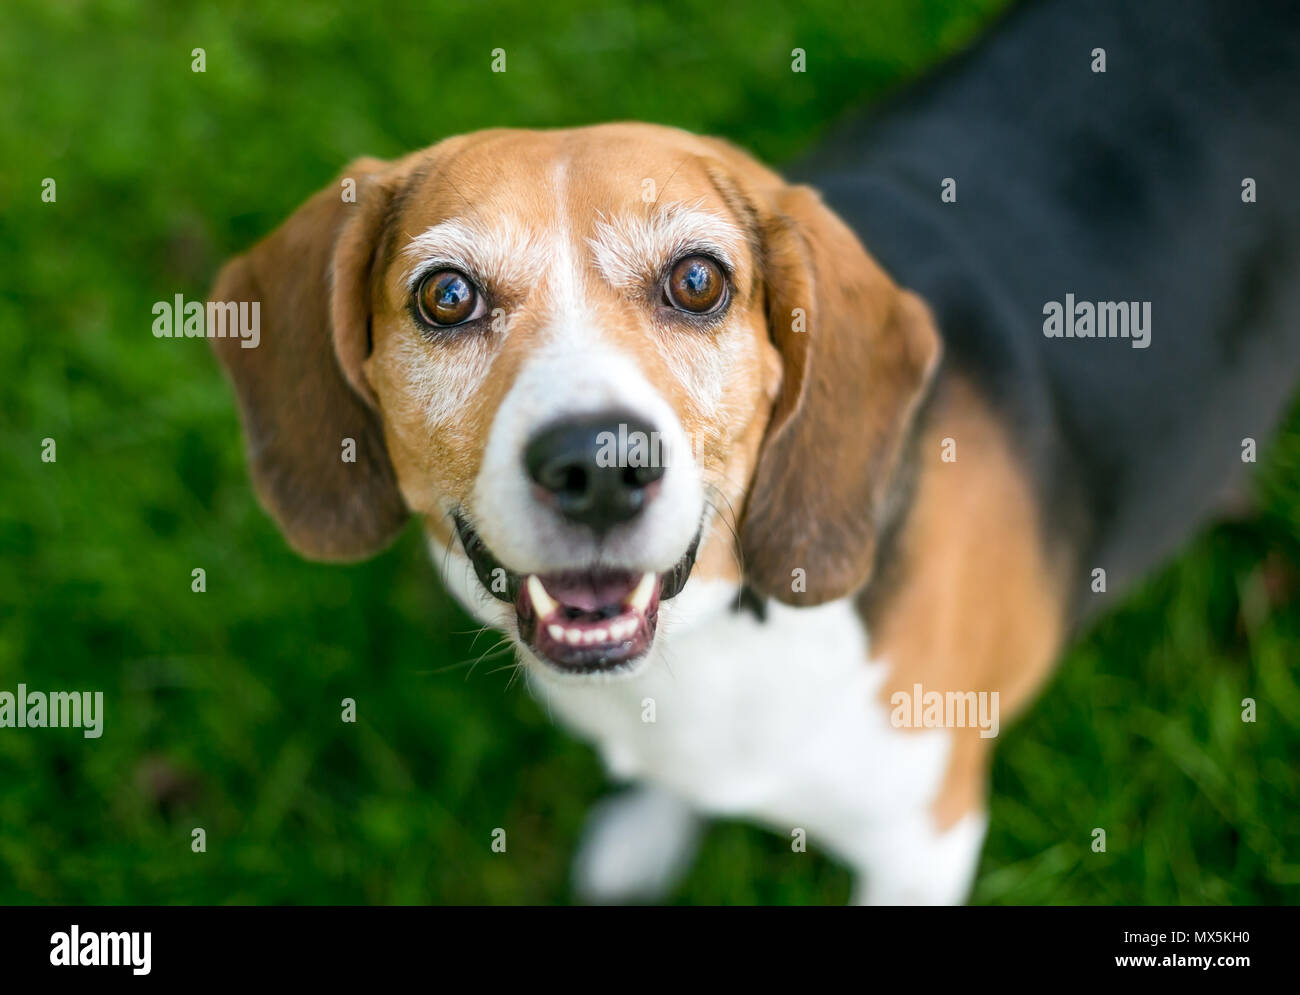 A happy tricolor Beagle dog looking up - Stock Image